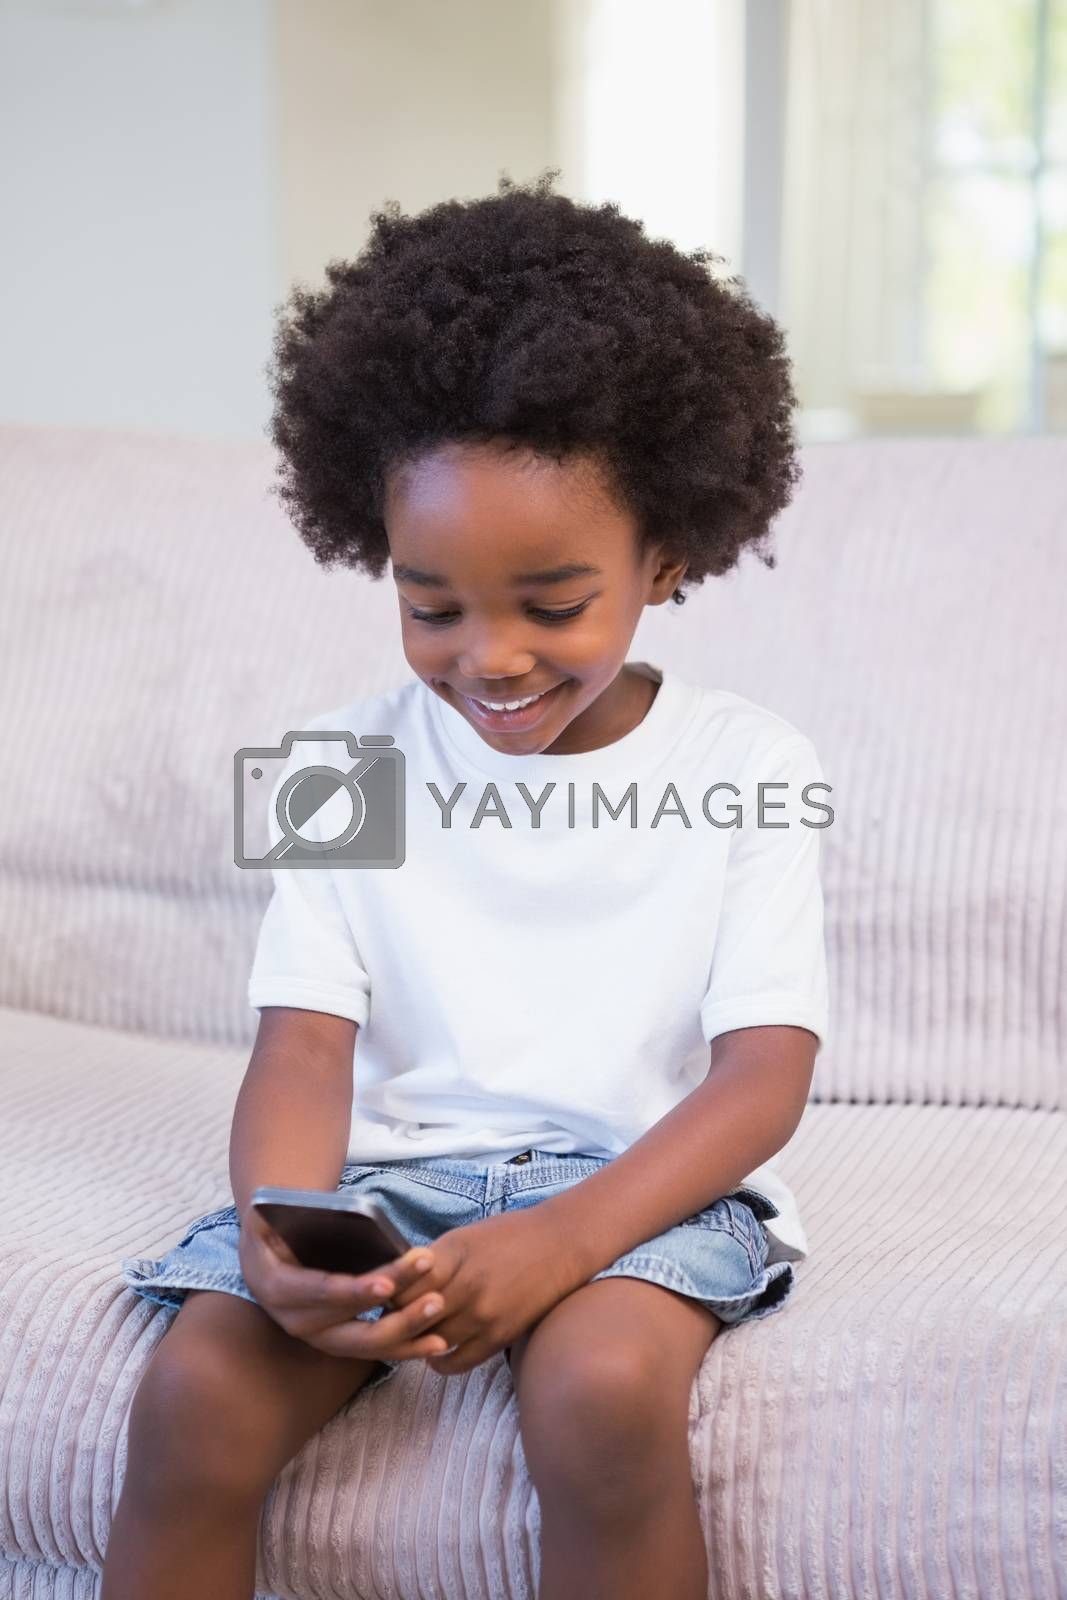 Royalty free image of Little boy using a technology by Wavebreakmedia